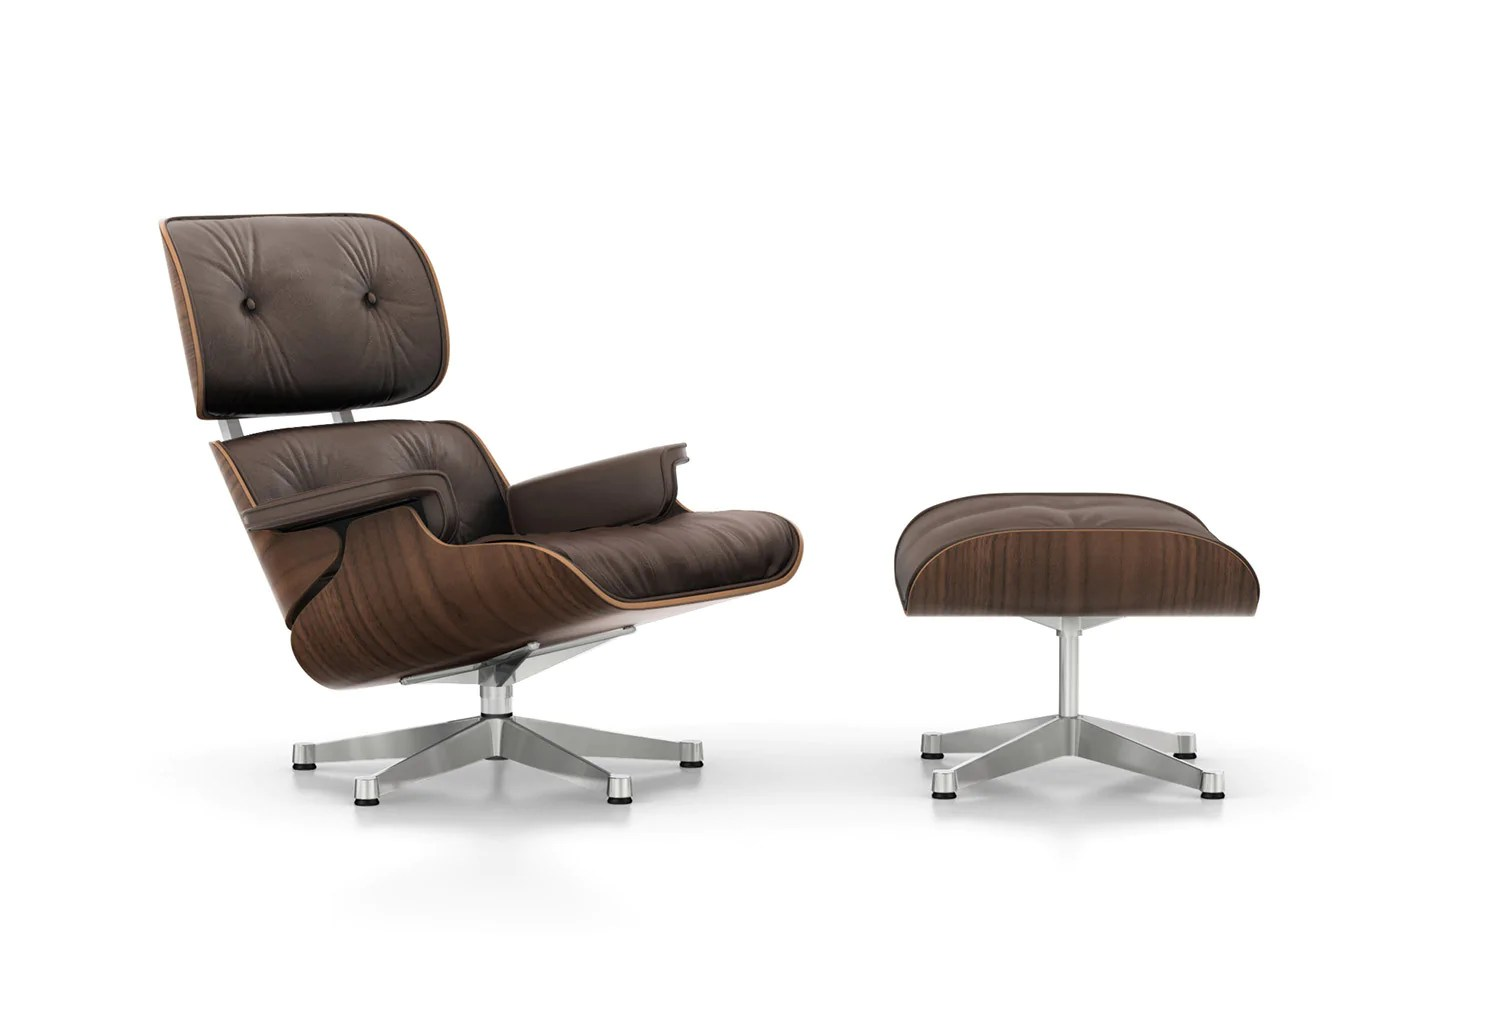 Vitra Eames Lounge Chair Black Eames Lounge Chair Black Pigmented Walnut